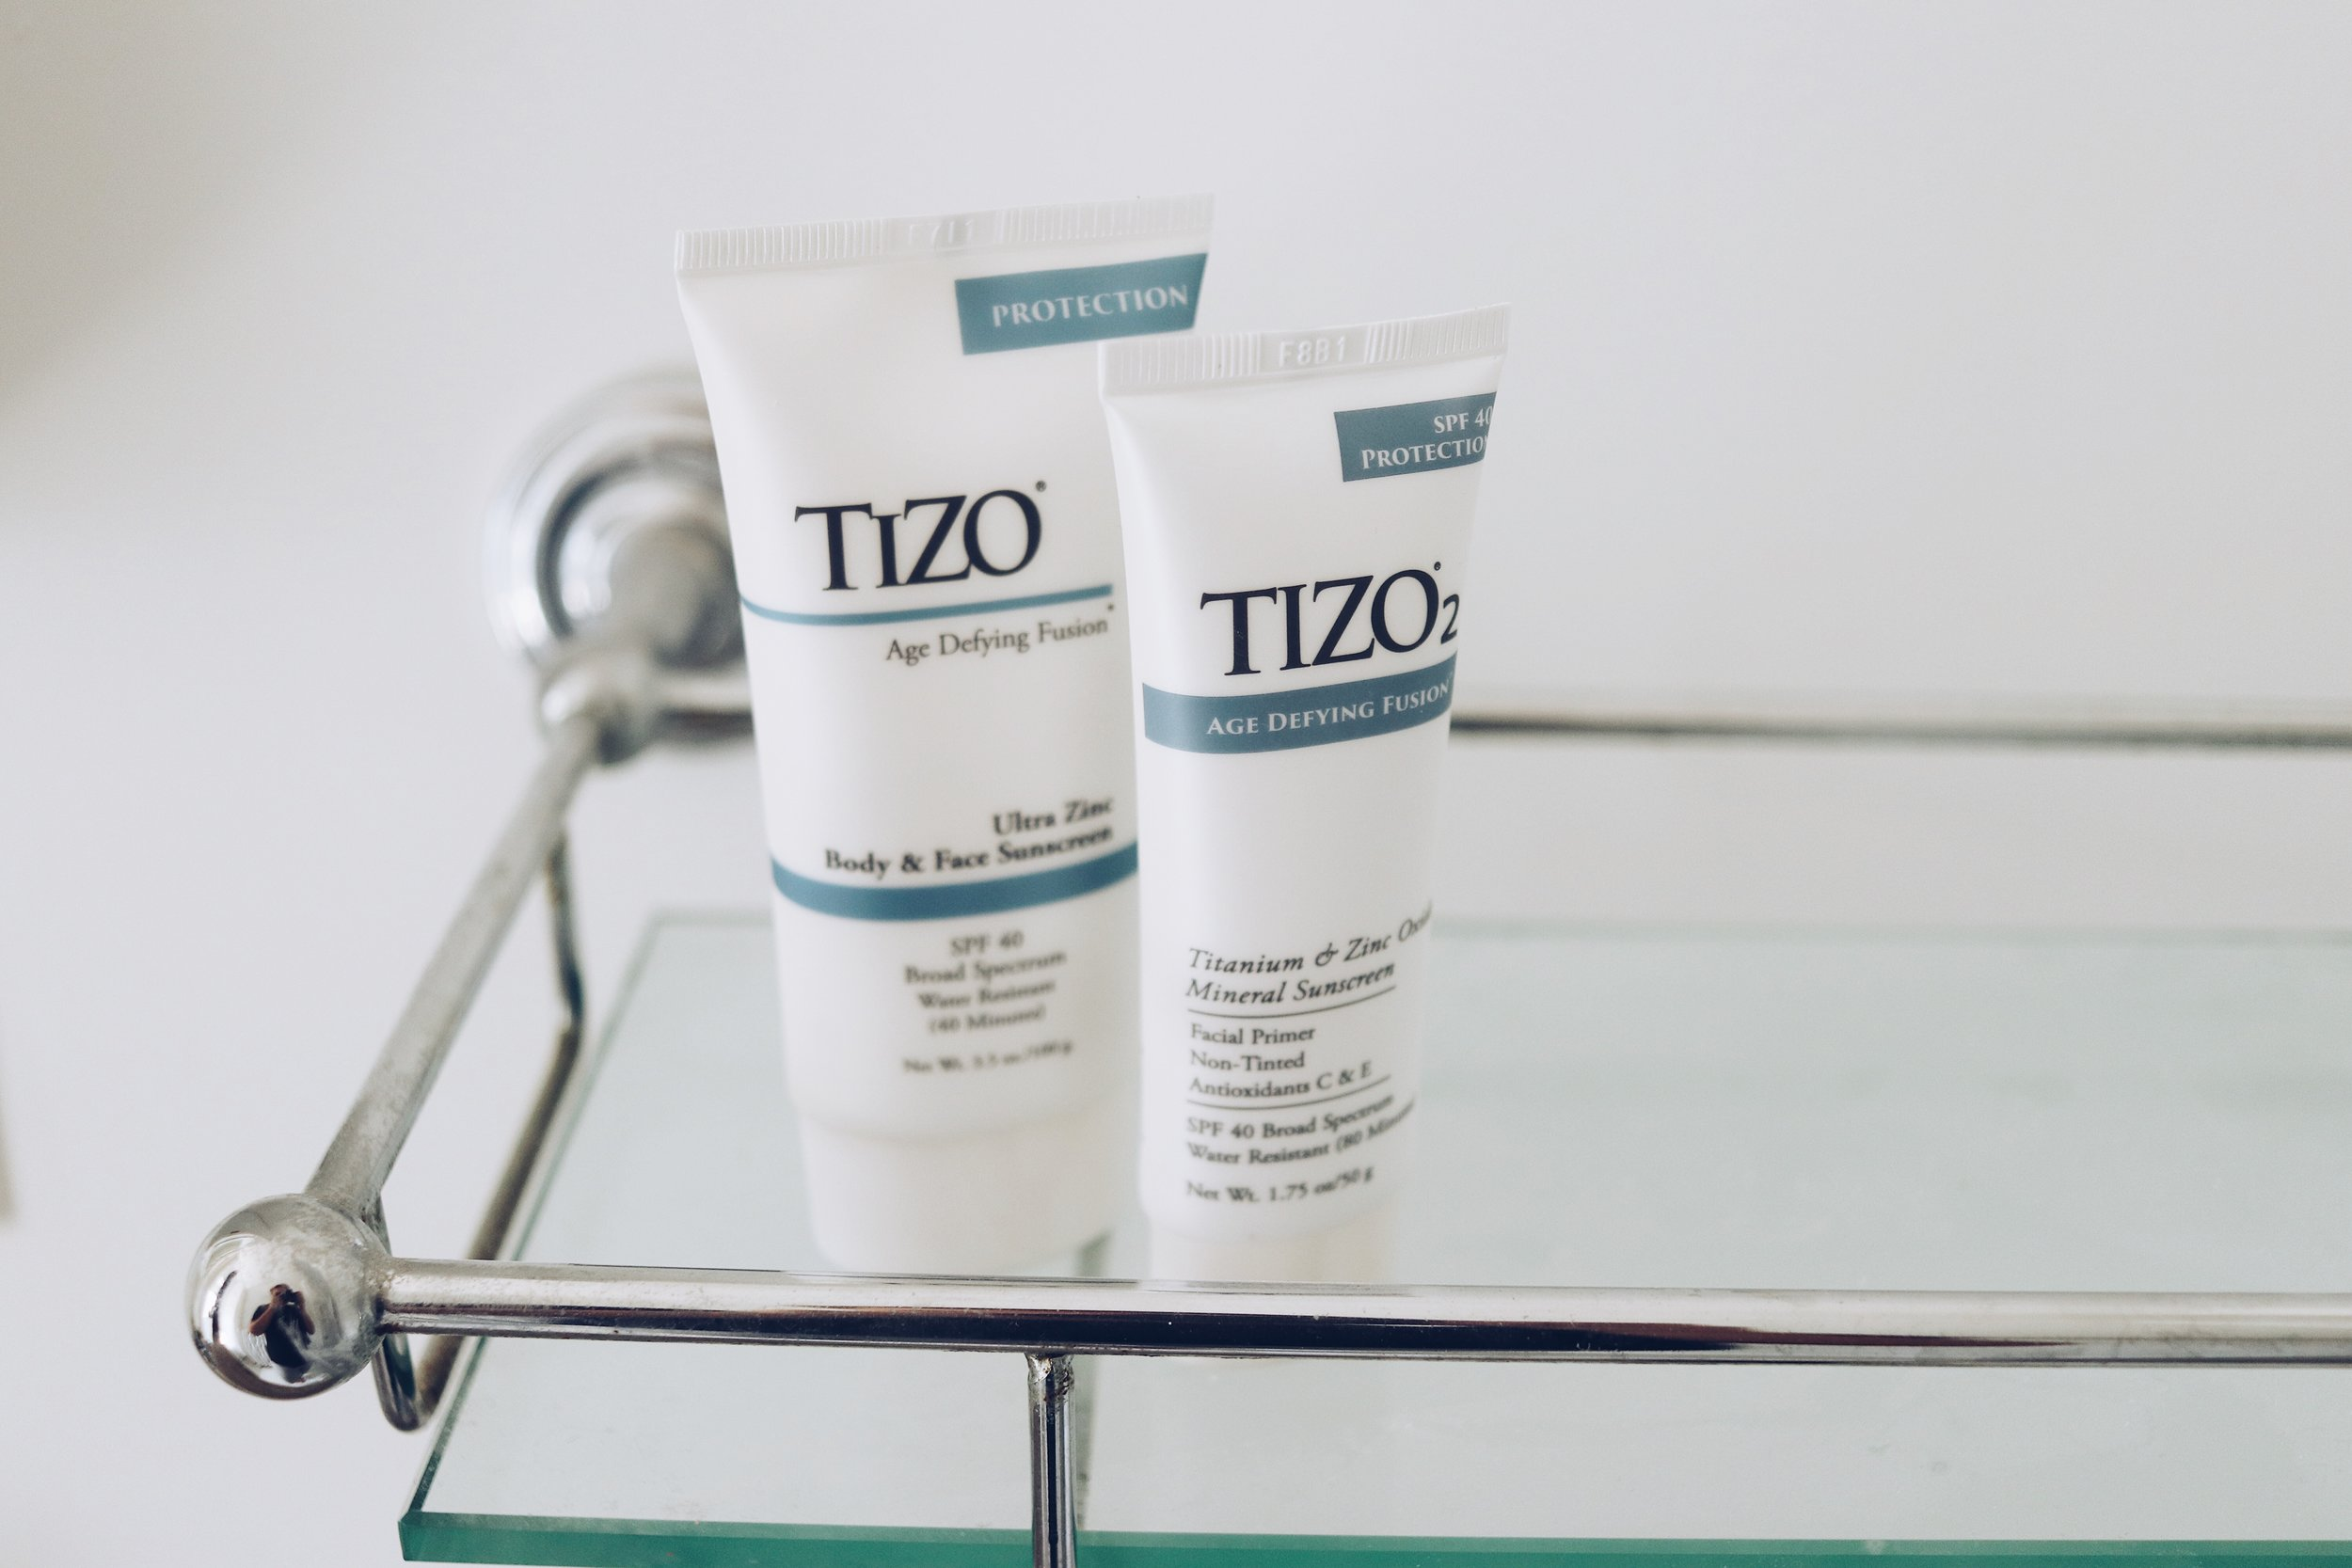 TIZO SUNSCREEN   These mineral sunscreens change and help to slow signs of pre-mature skin aging by protecting the skin from the aging effects of the sun. Solar Radiation exposure results in dry, damaged skin with a higher risk of pigmentation changes, fine lines and wrinkles as well as skin cancer.   Why we love it:  + Free from chemicals, oils, preservatives and parabens + Prevents premature aging   Top Products:    TIZO3 Tinted Facial Sunscreen:  $39   TIZO2 Non-Tinted Facial Sunscreen:  $39